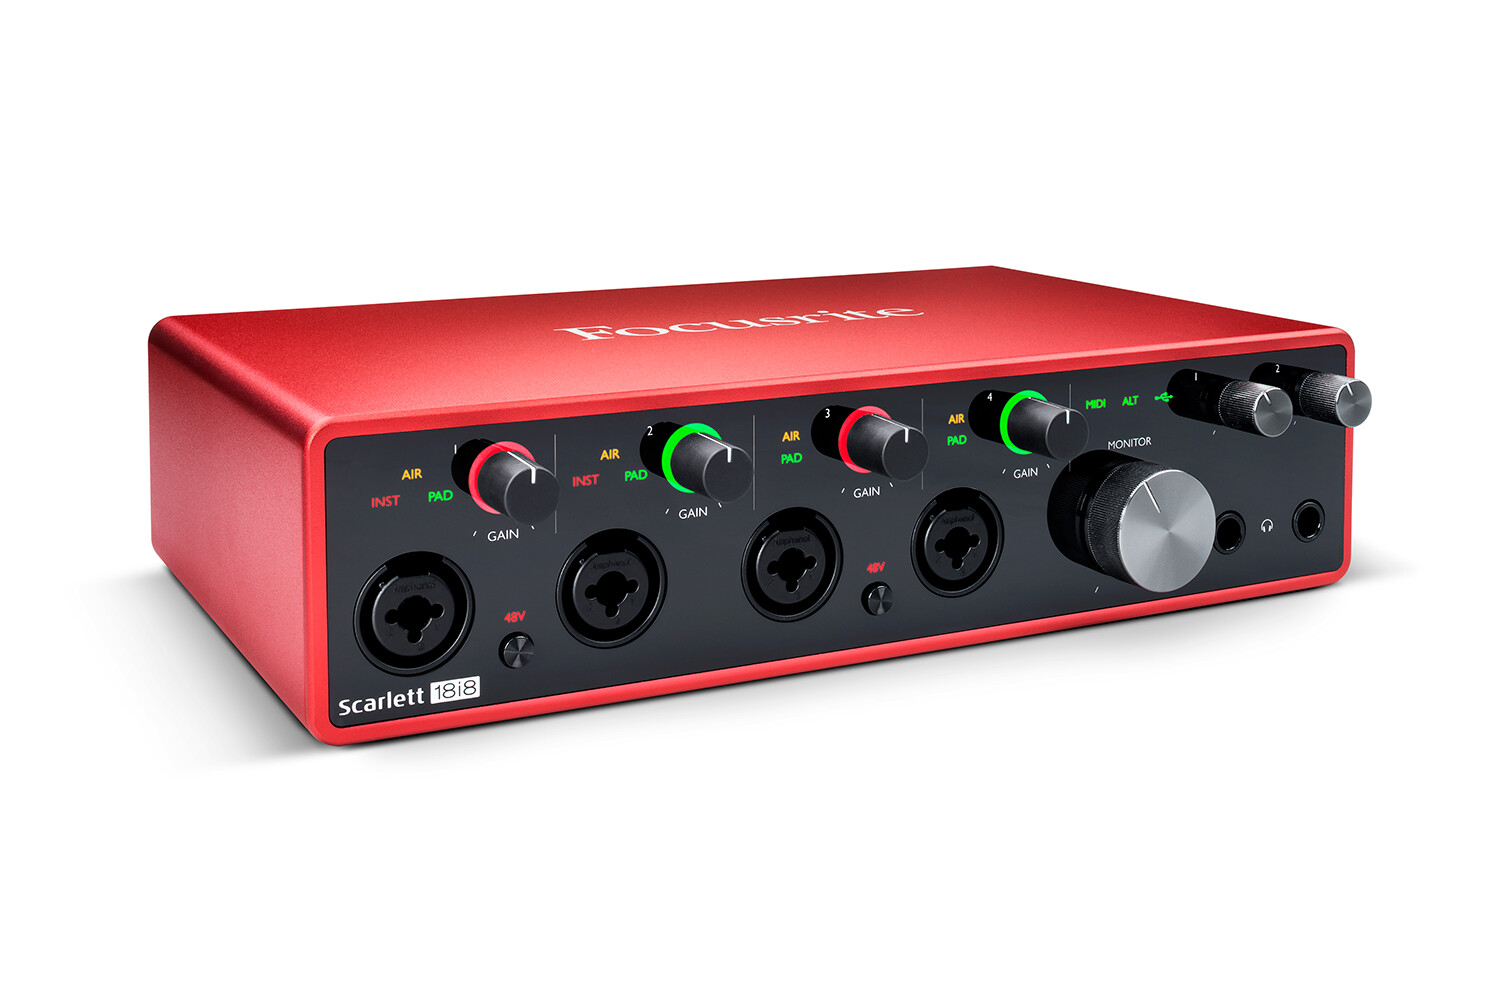 Focusrite Scarlett 18i8 usb audio interface (3rd Generation)